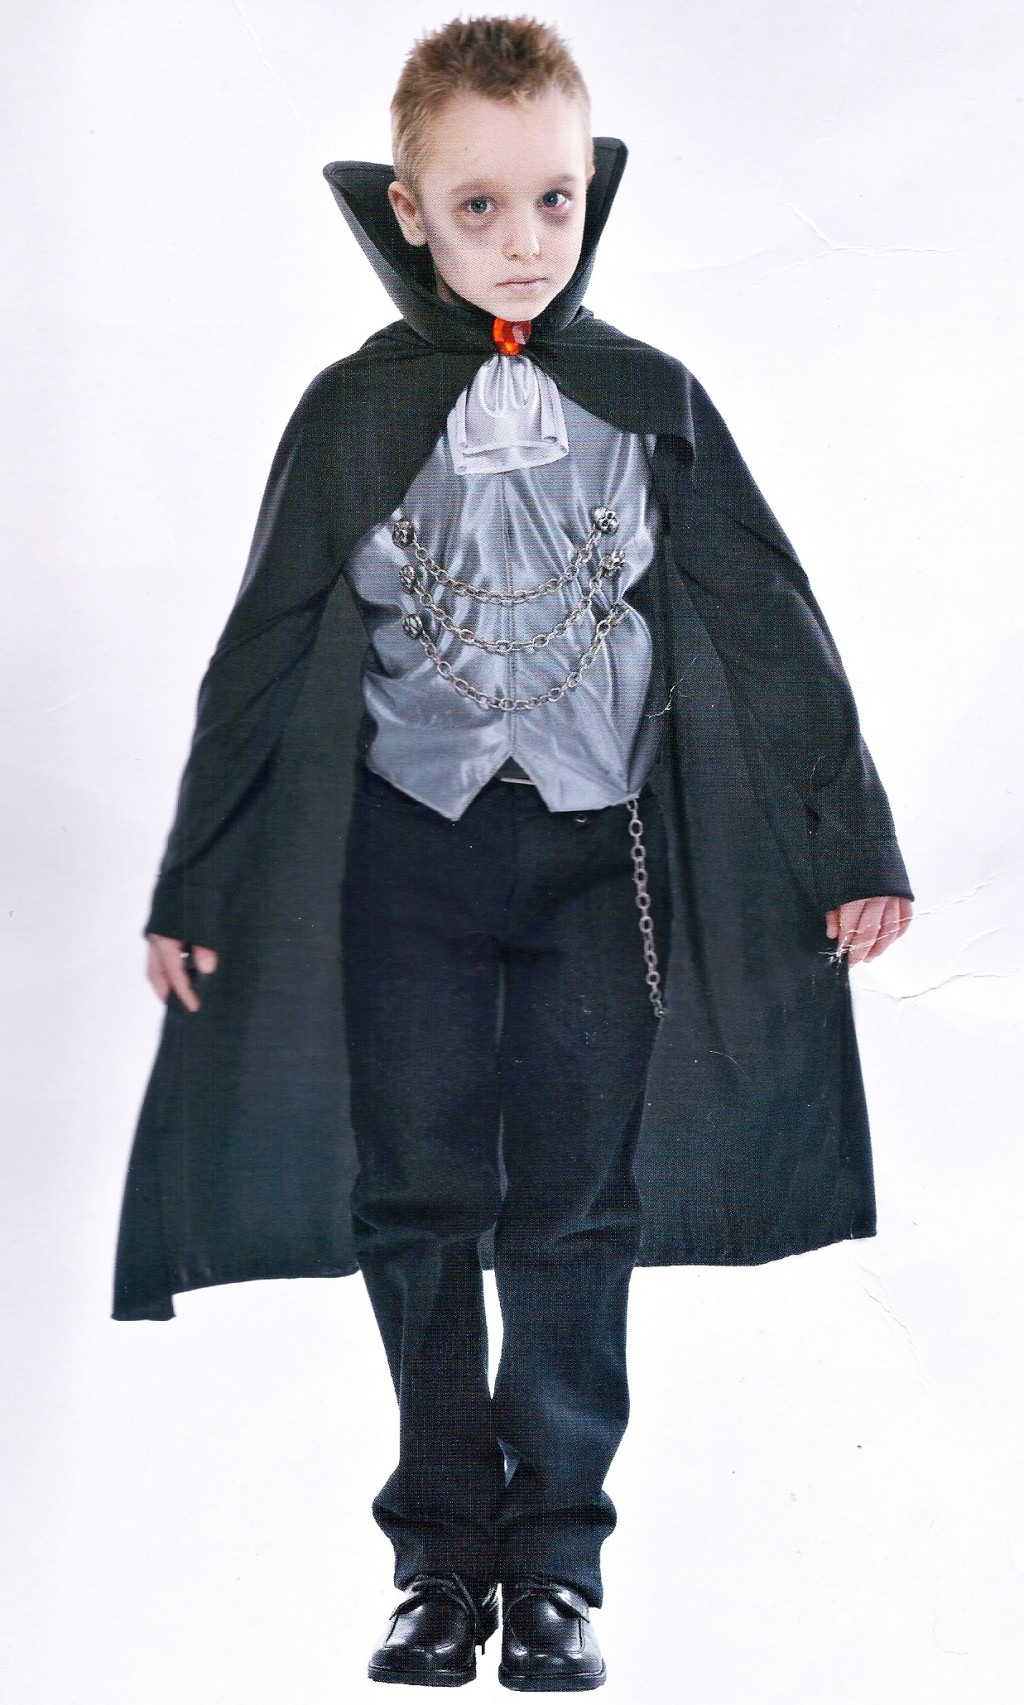 Fang_Dracula_Vampire_Halloween_Costume_Child